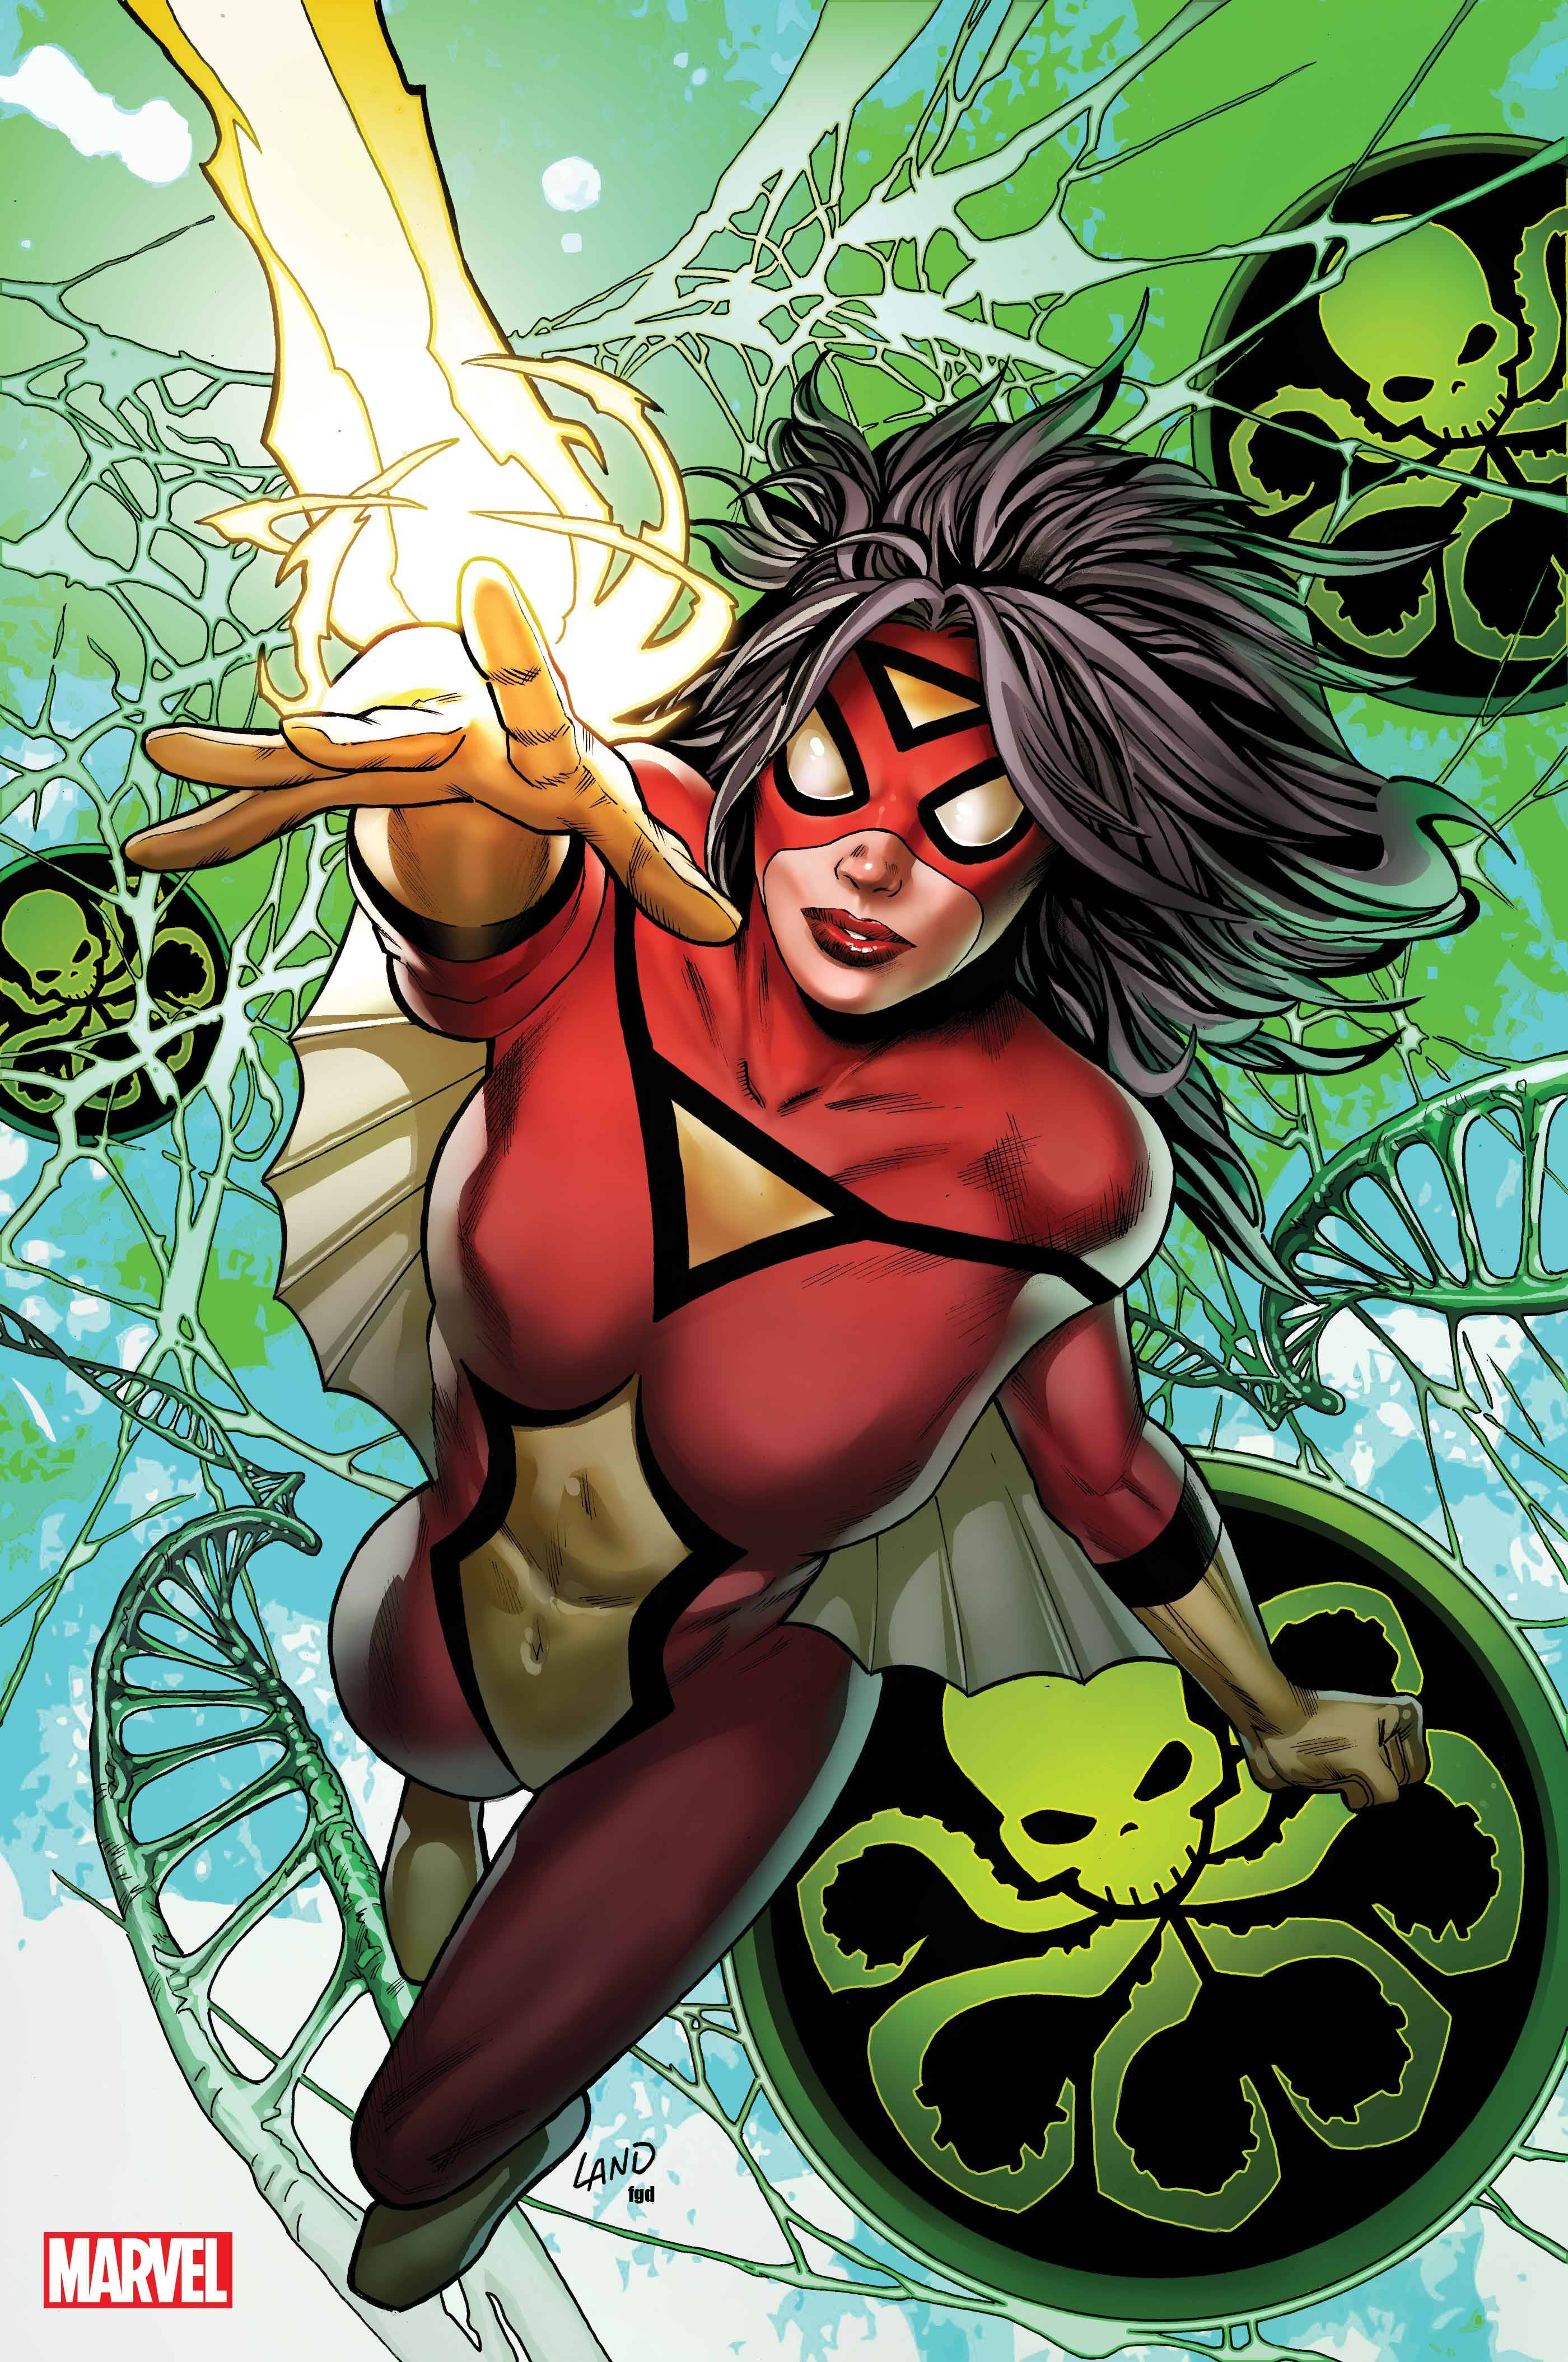 SPIDER-WOMAN #5 LAND VIRGIN VAR